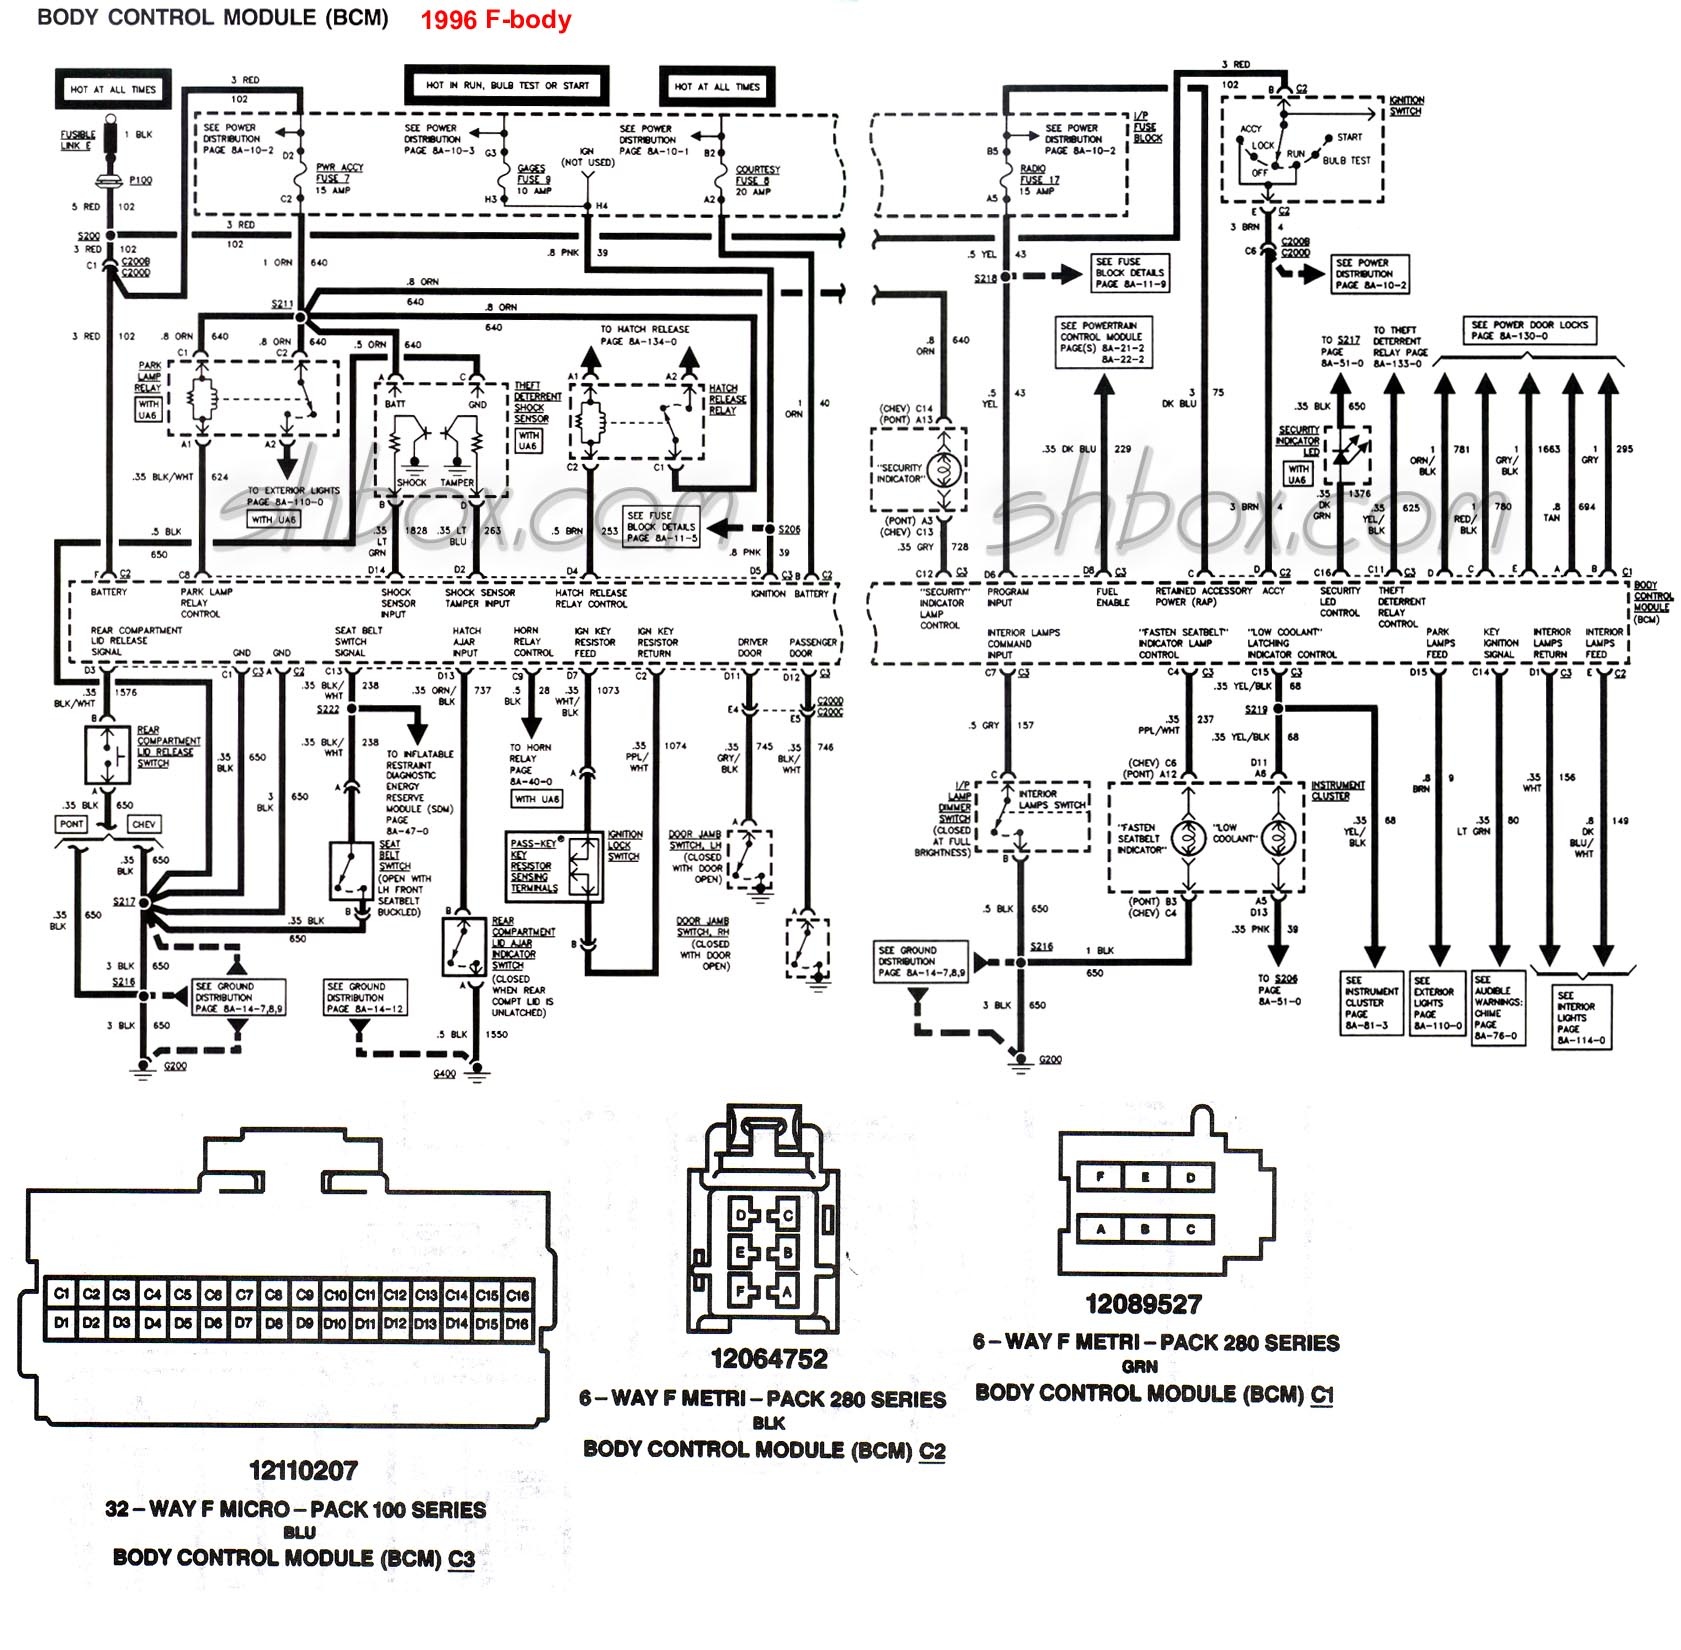 hight resolution of 1996 camaro wiring diagram